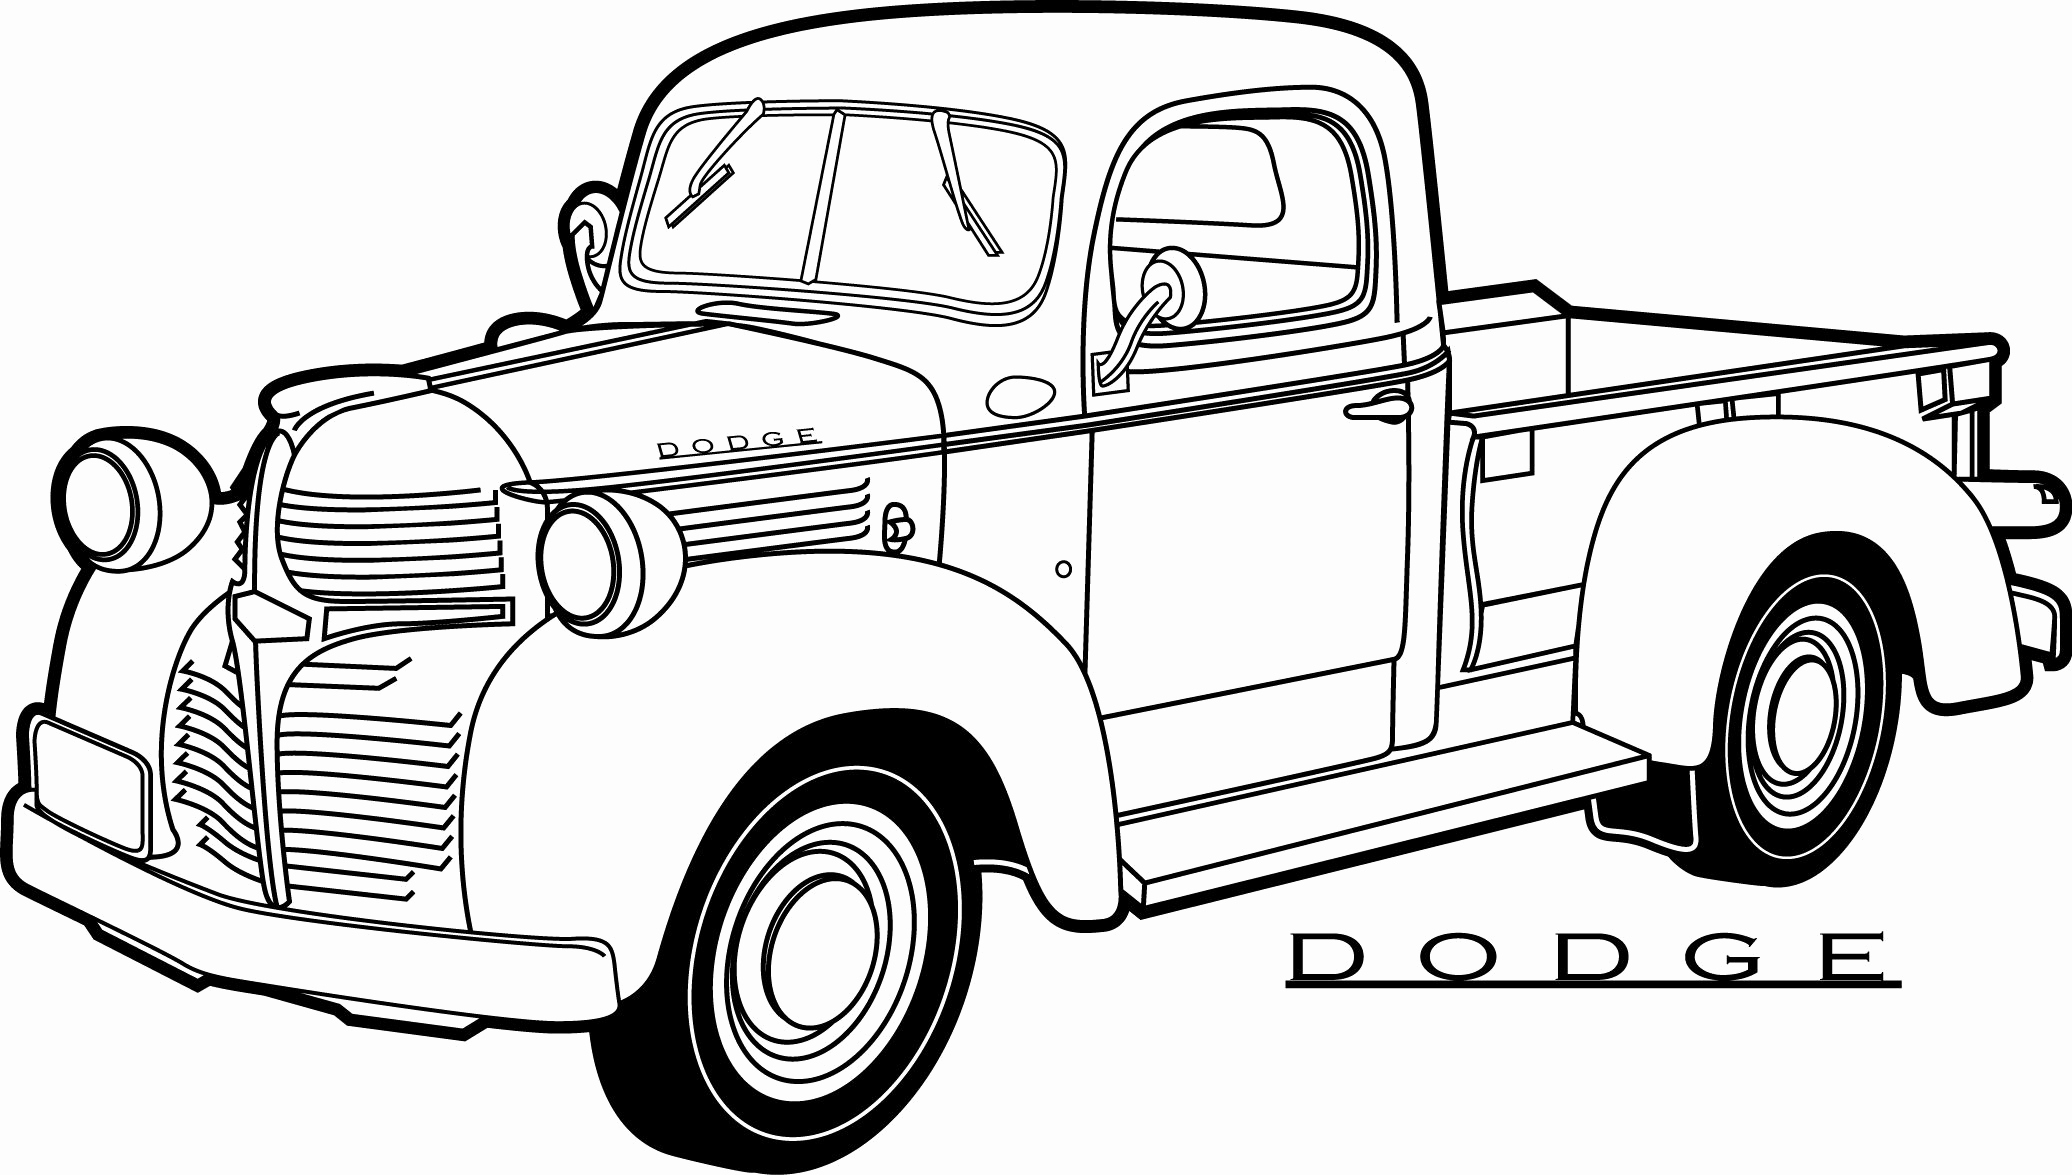 Ford Truck Coloring Pages At Getdrawings Free Download